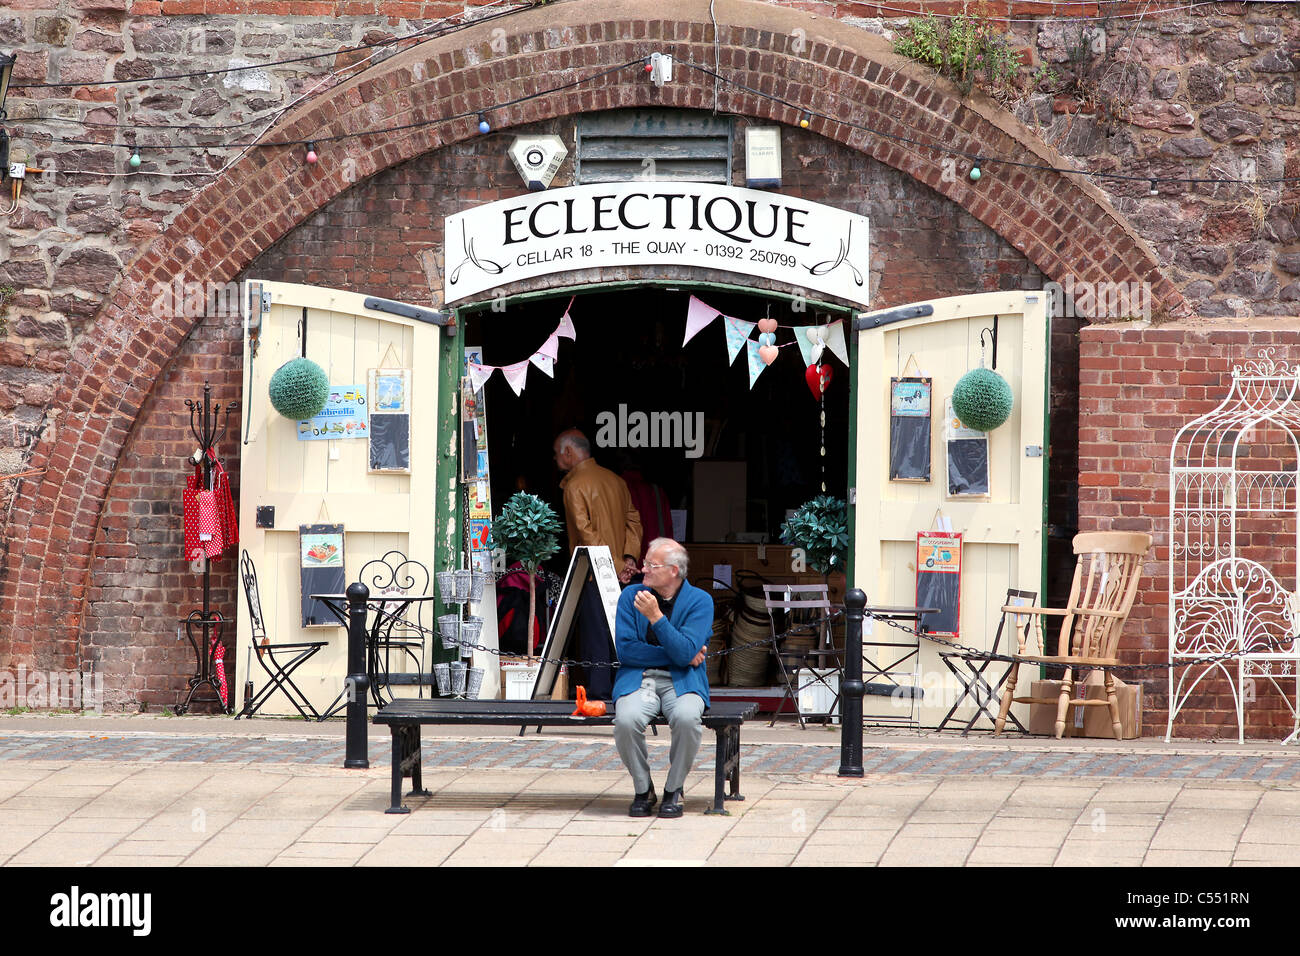 Pic by Mark Passmore/markpassmore.com. 12/09/2010. GV of Exeter's historic Quay. - Stock Image